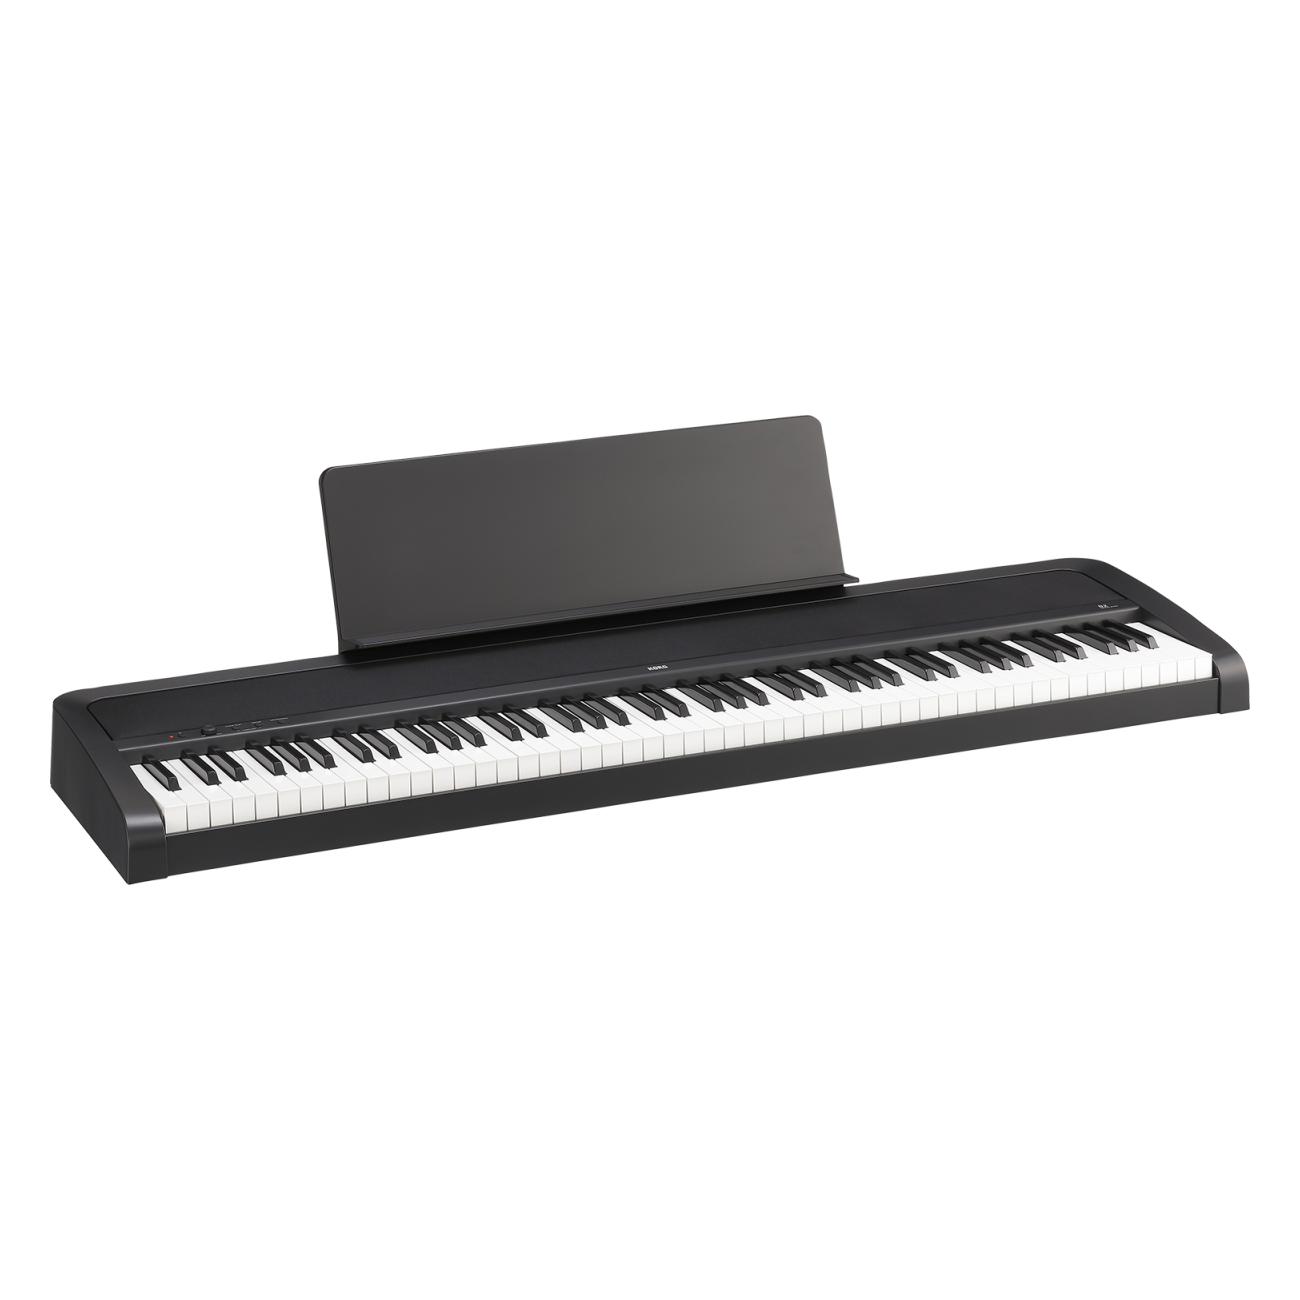 Korg - Concert Series - B2 Digital Pianos